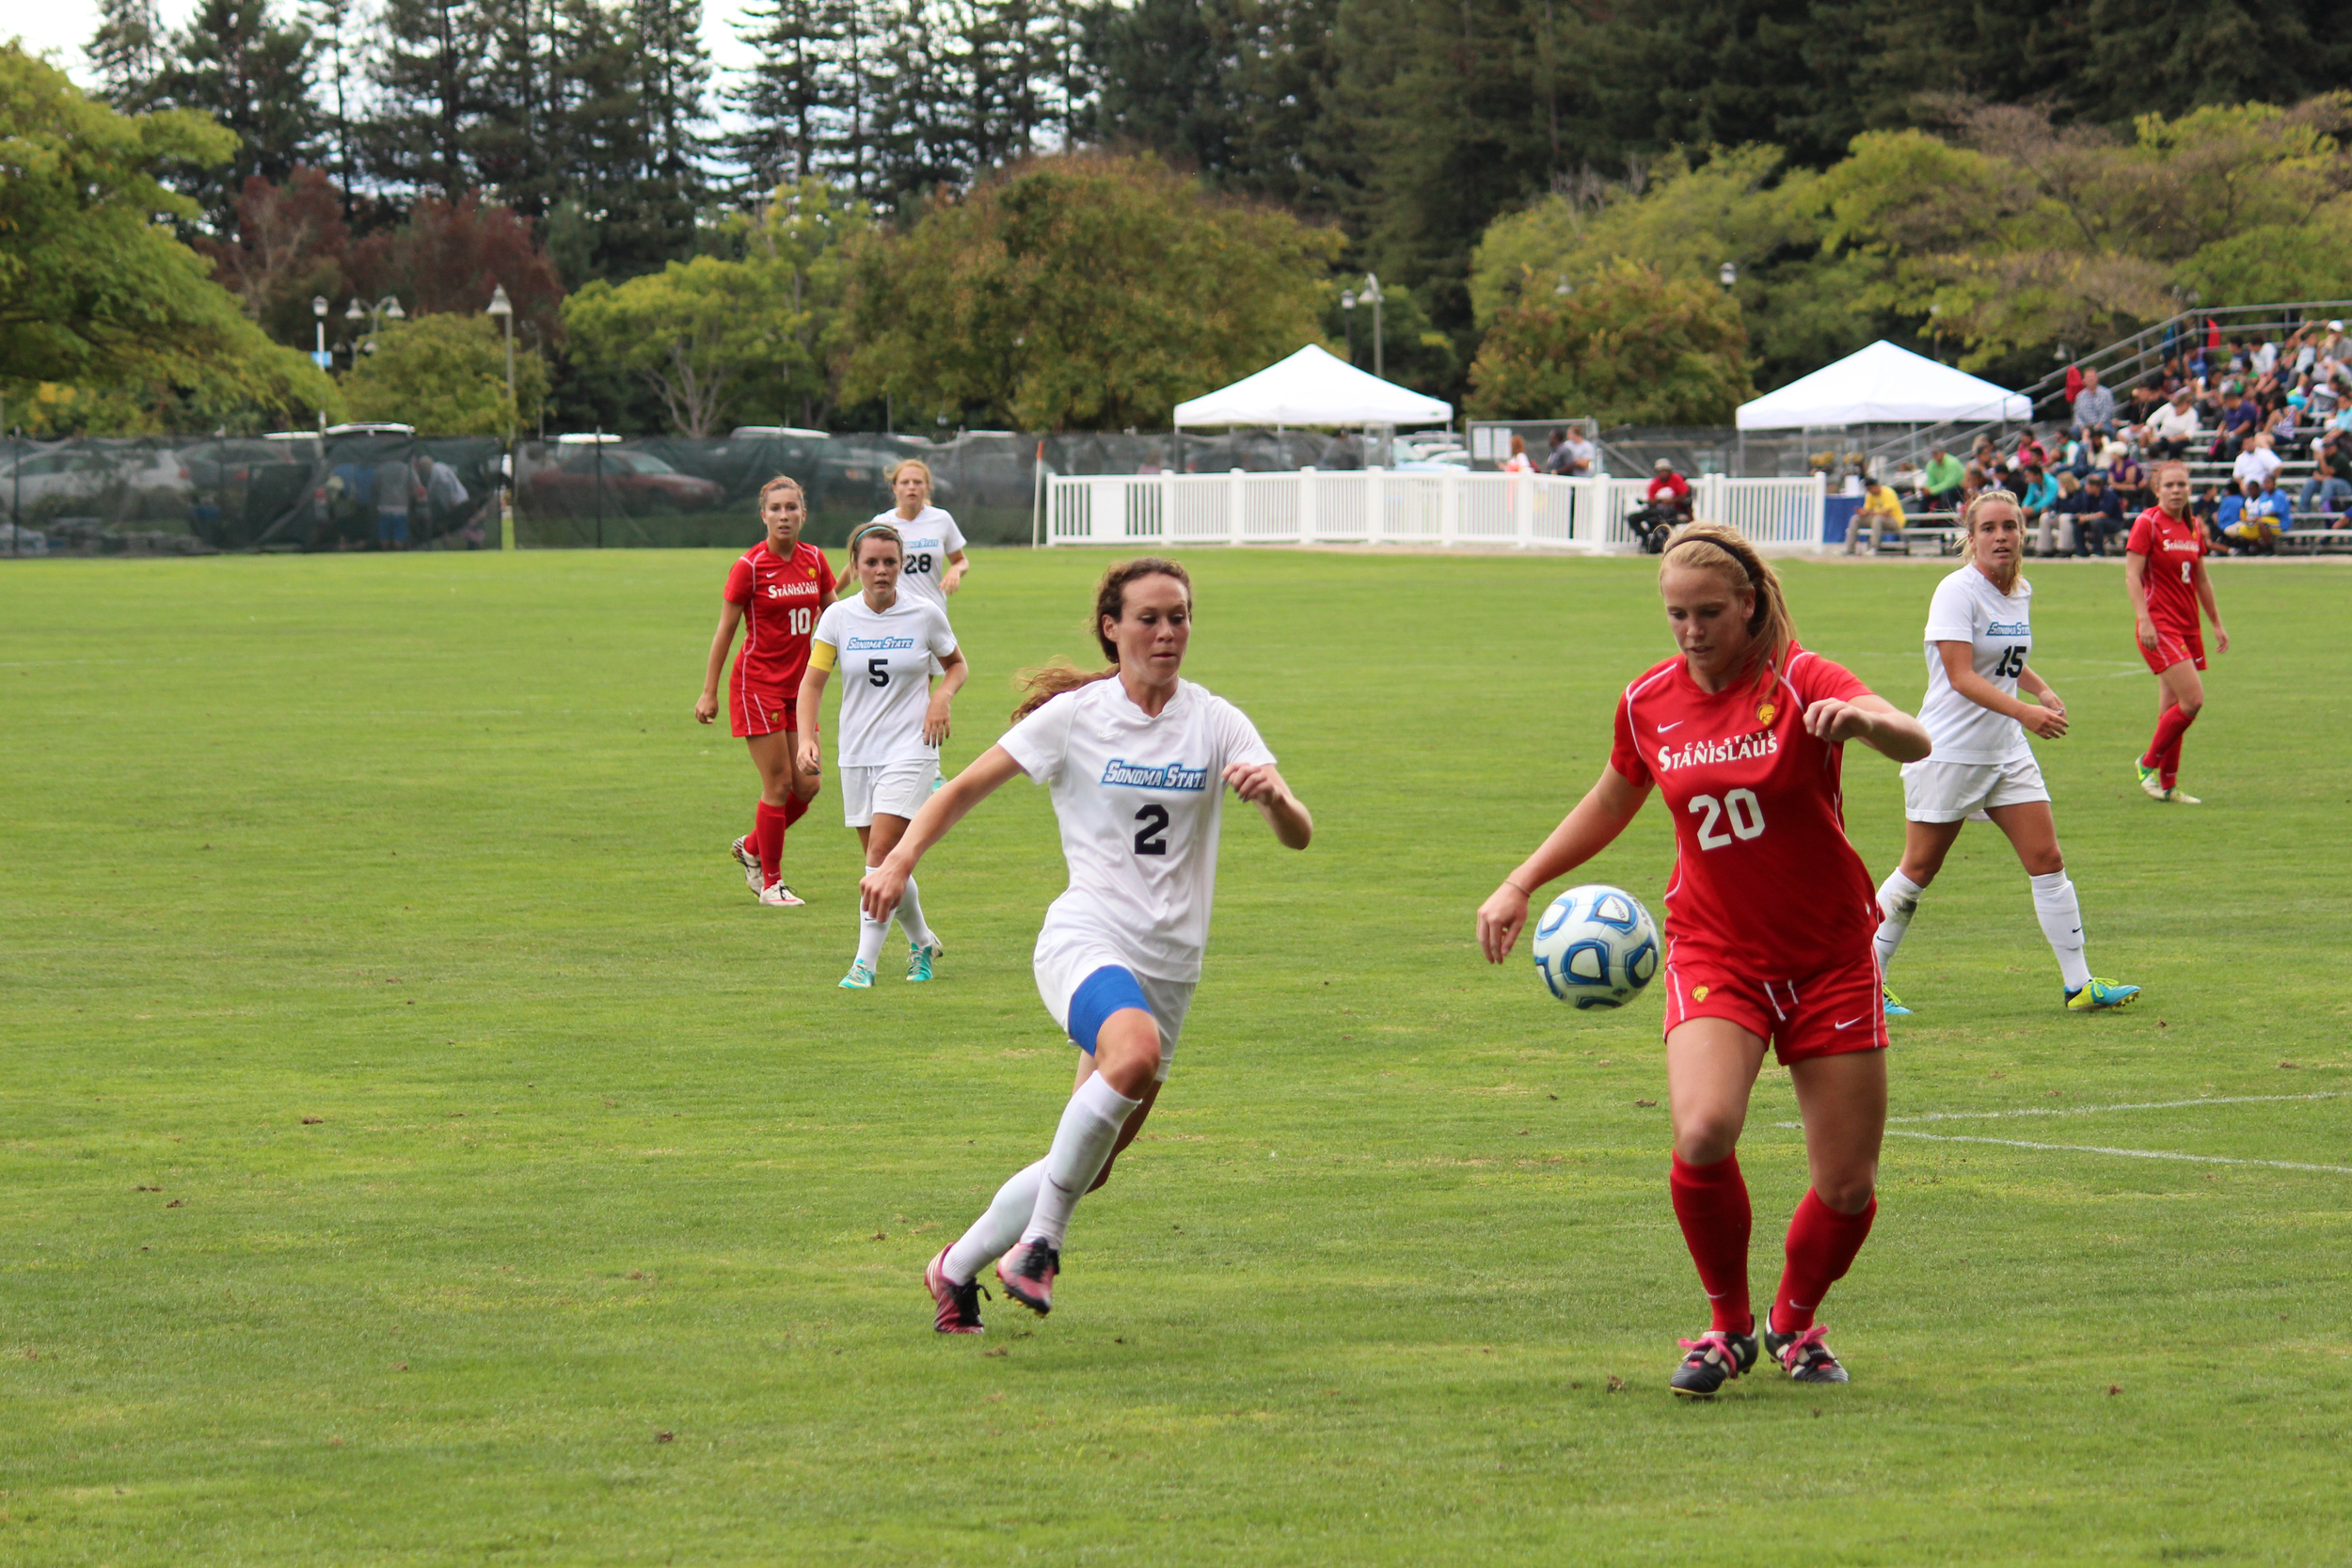 STAR // Spencer Vaishville    Cara Curtin battles for possession of the ball. Next week the Seawolves will head down to CSU Stanislaus for the CCAA Women's Soccer Championship Tournament against CSU San Bernardino.